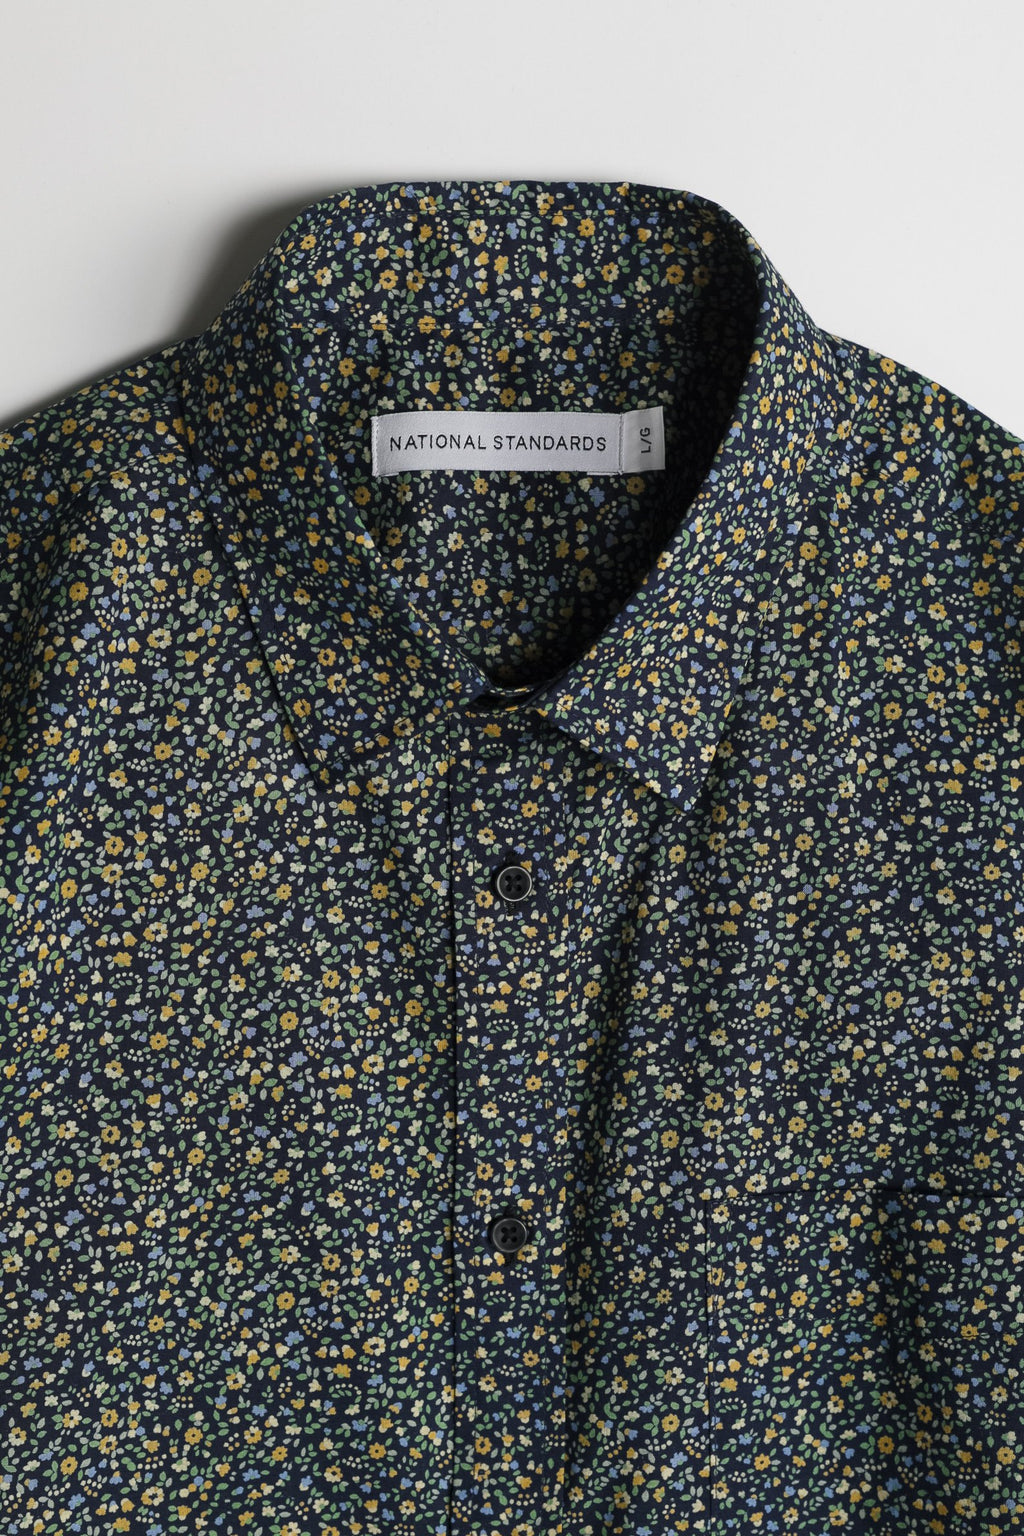 japanese-floral-print-in-navy-and-mustard 02